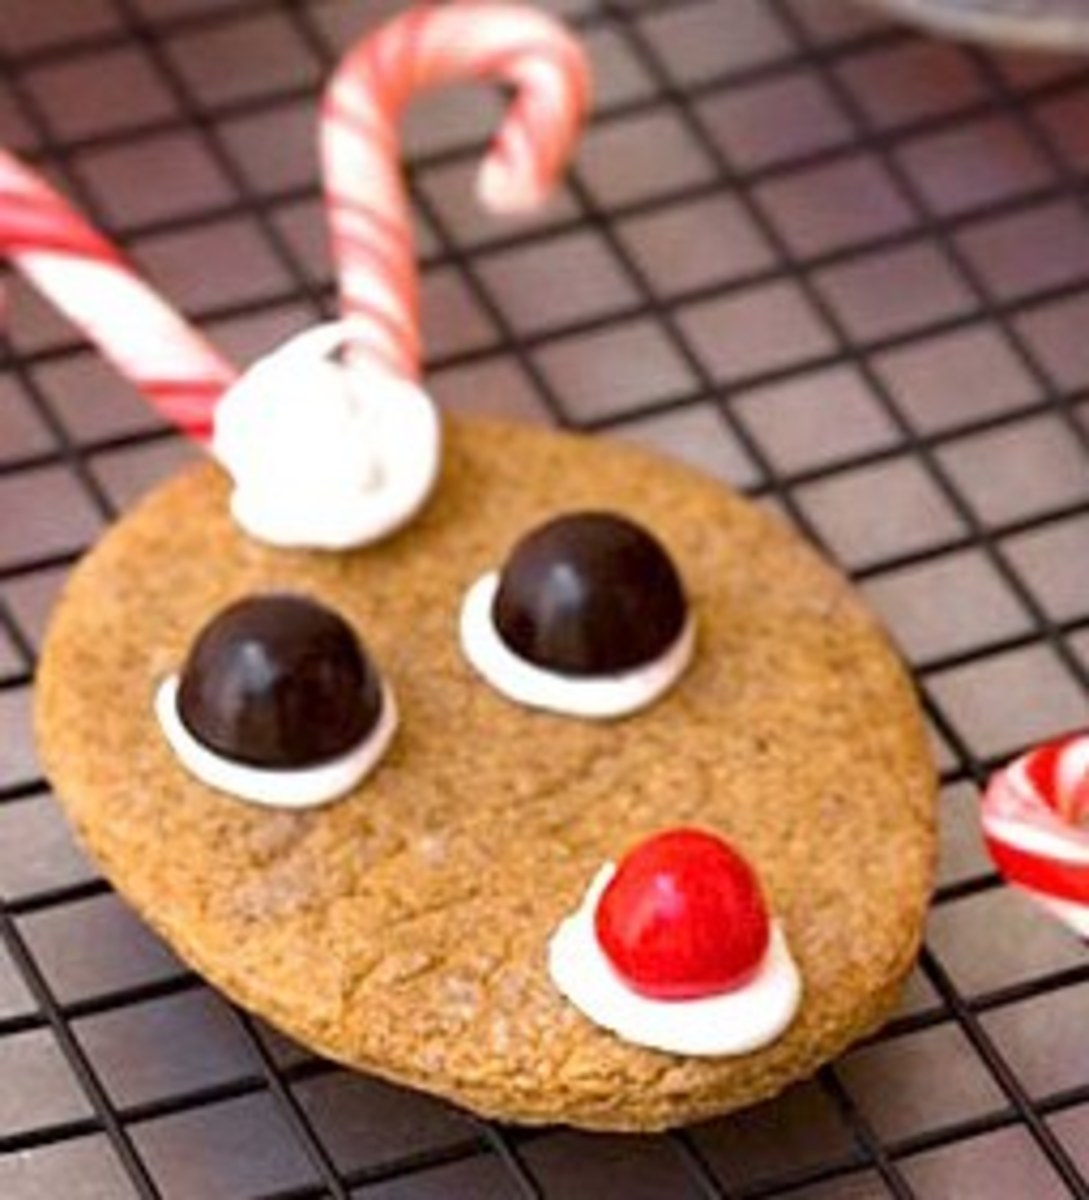 Easy Reindeer cookies made from gingersnap cookies. Icing holds on the chocolate candy eyes, nose and peppermint candy cane antlers.